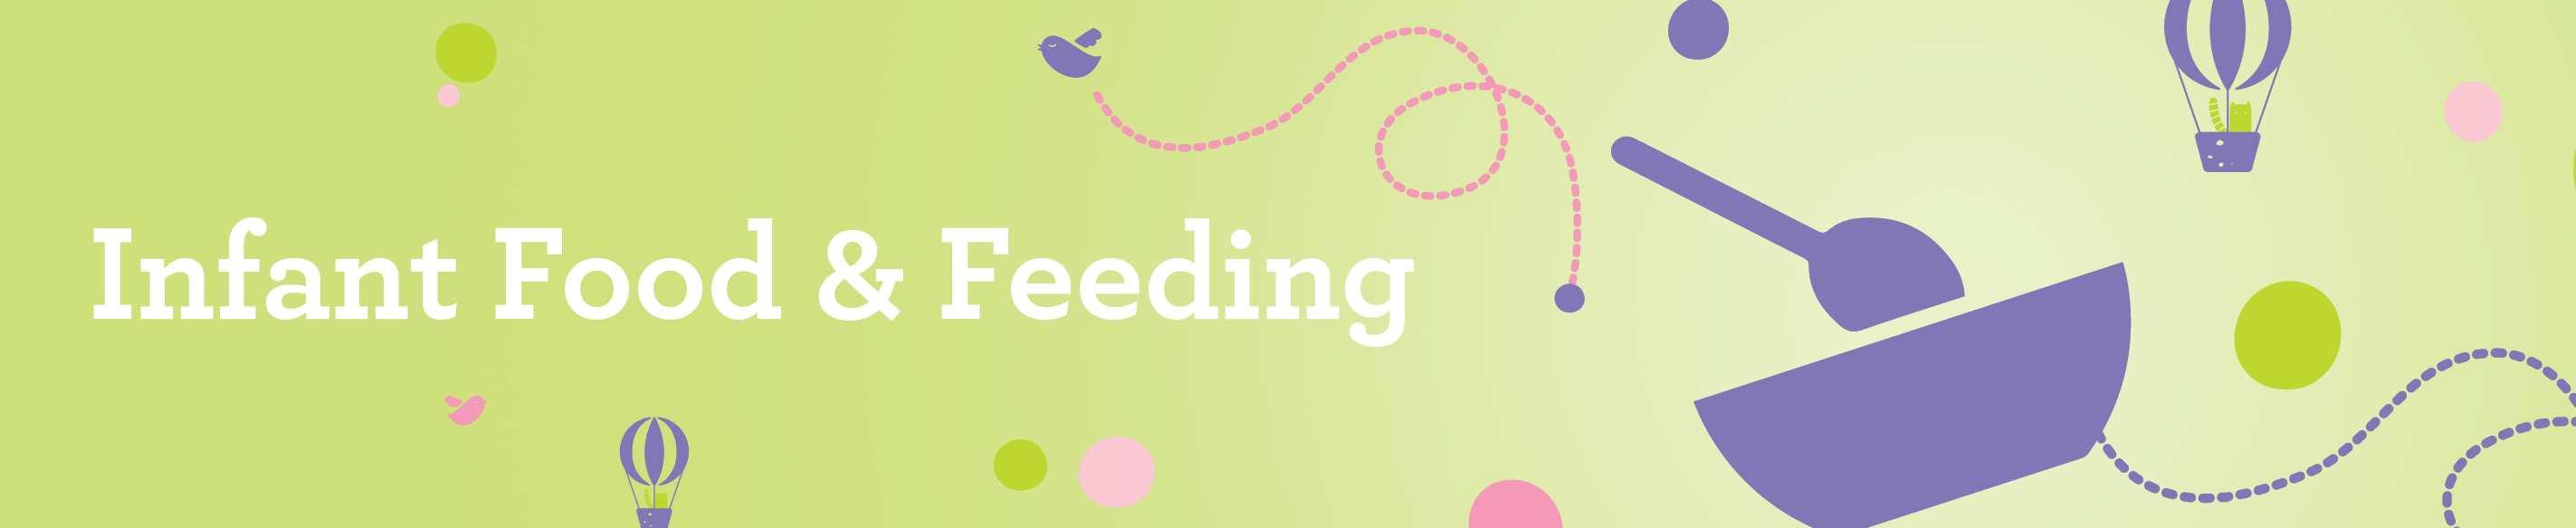 Infant Food & Feeding